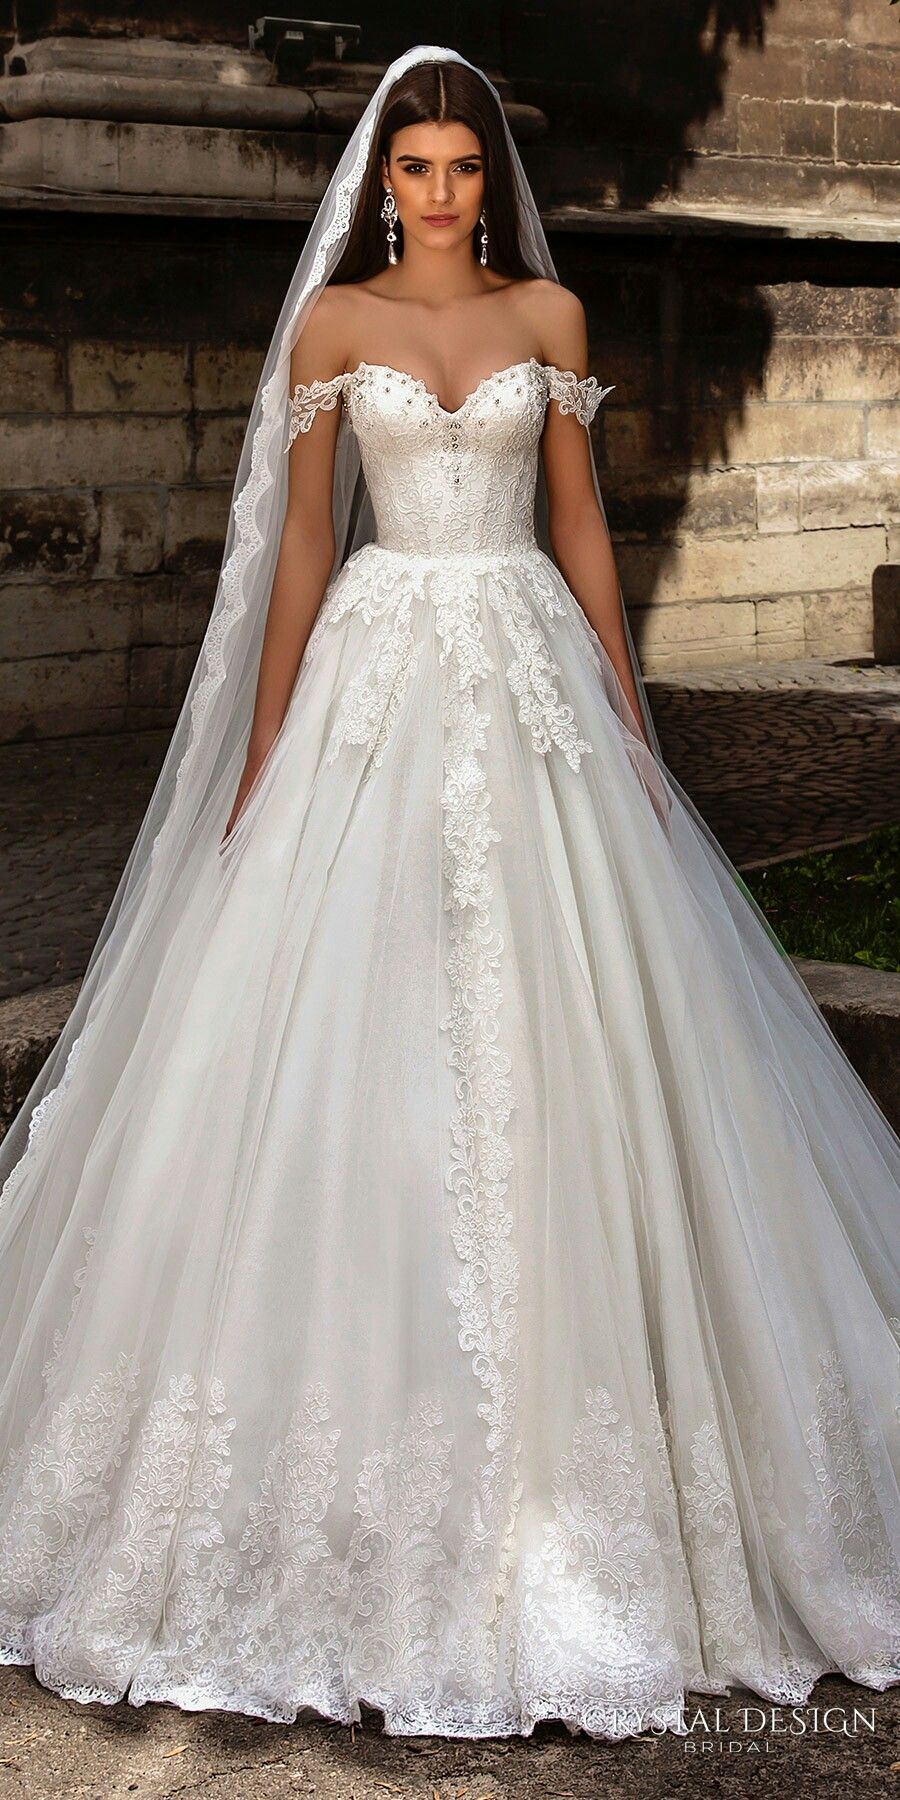 Cathedral wedding dress  Crystal Design  Collection  wedding  Pinterest  Crystals